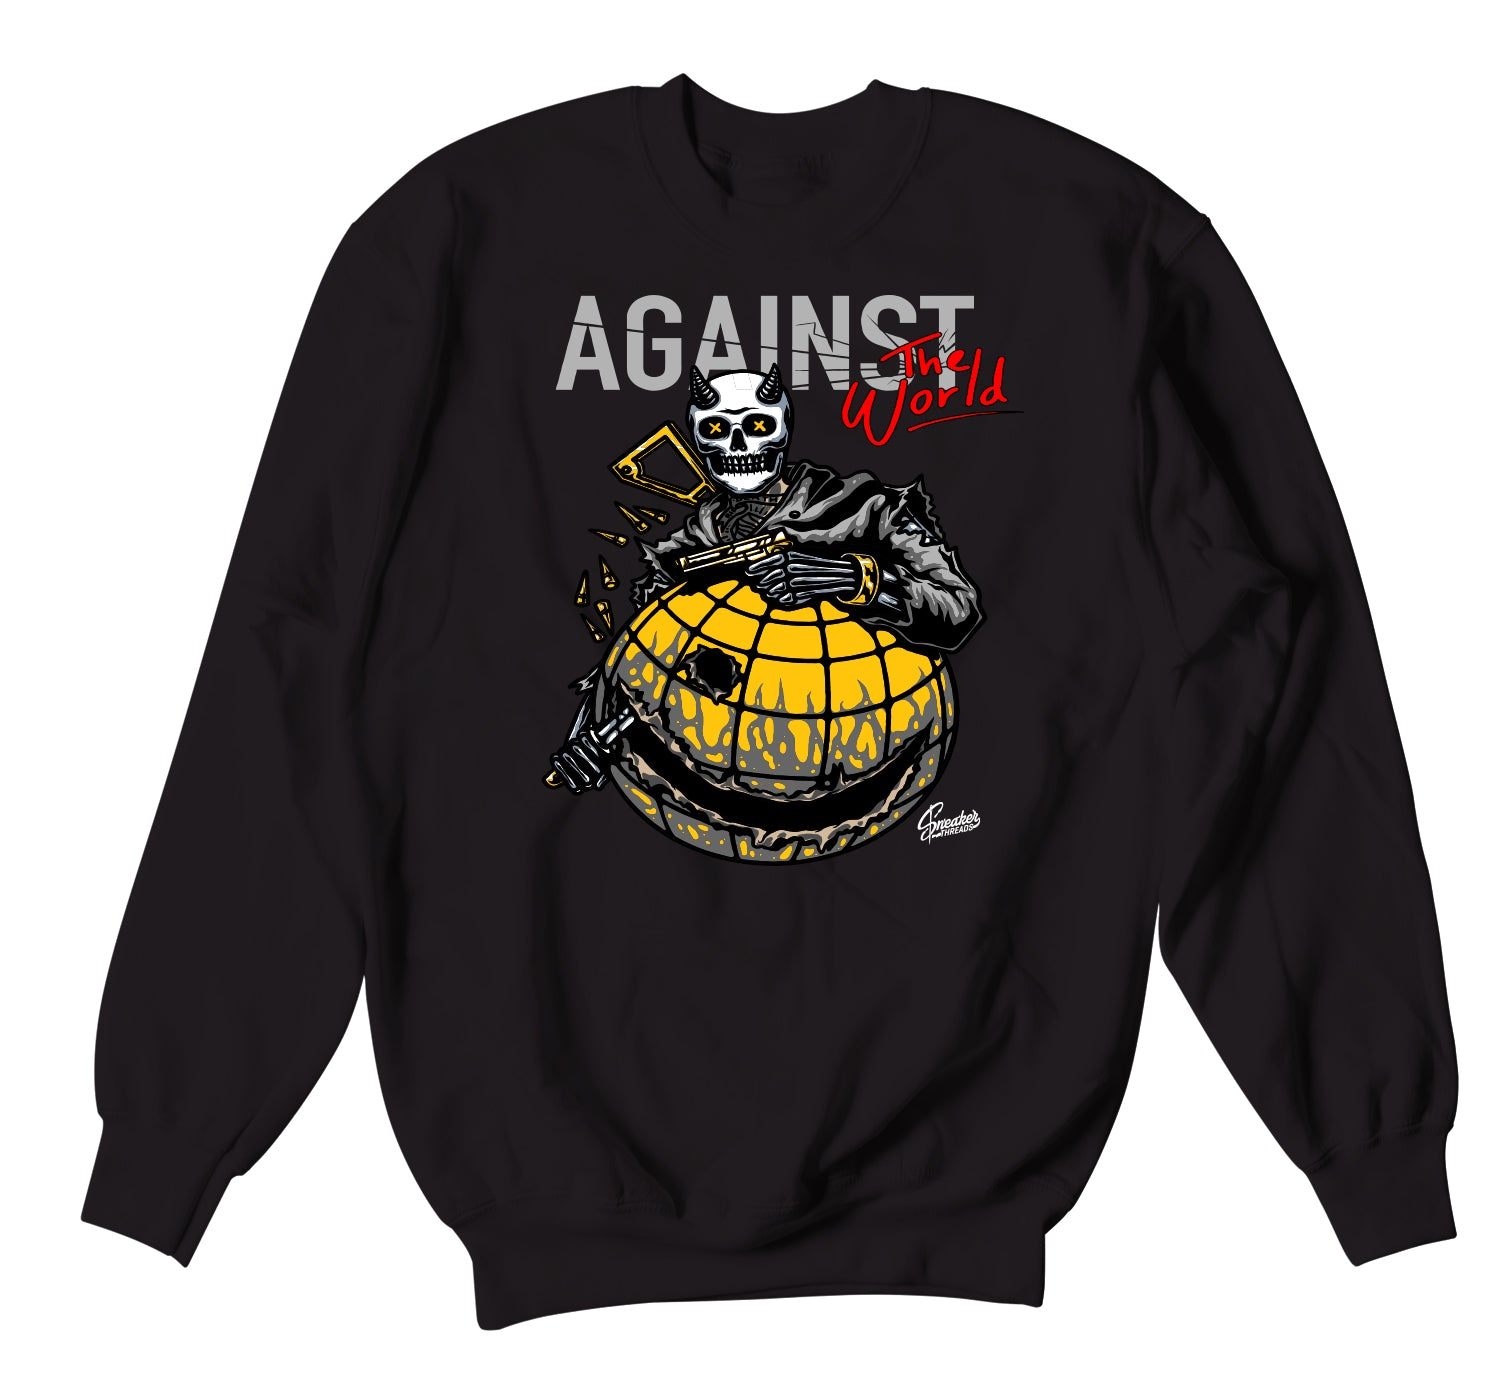 Jordan 3 Cool Grey Sweater - Against The World - Black